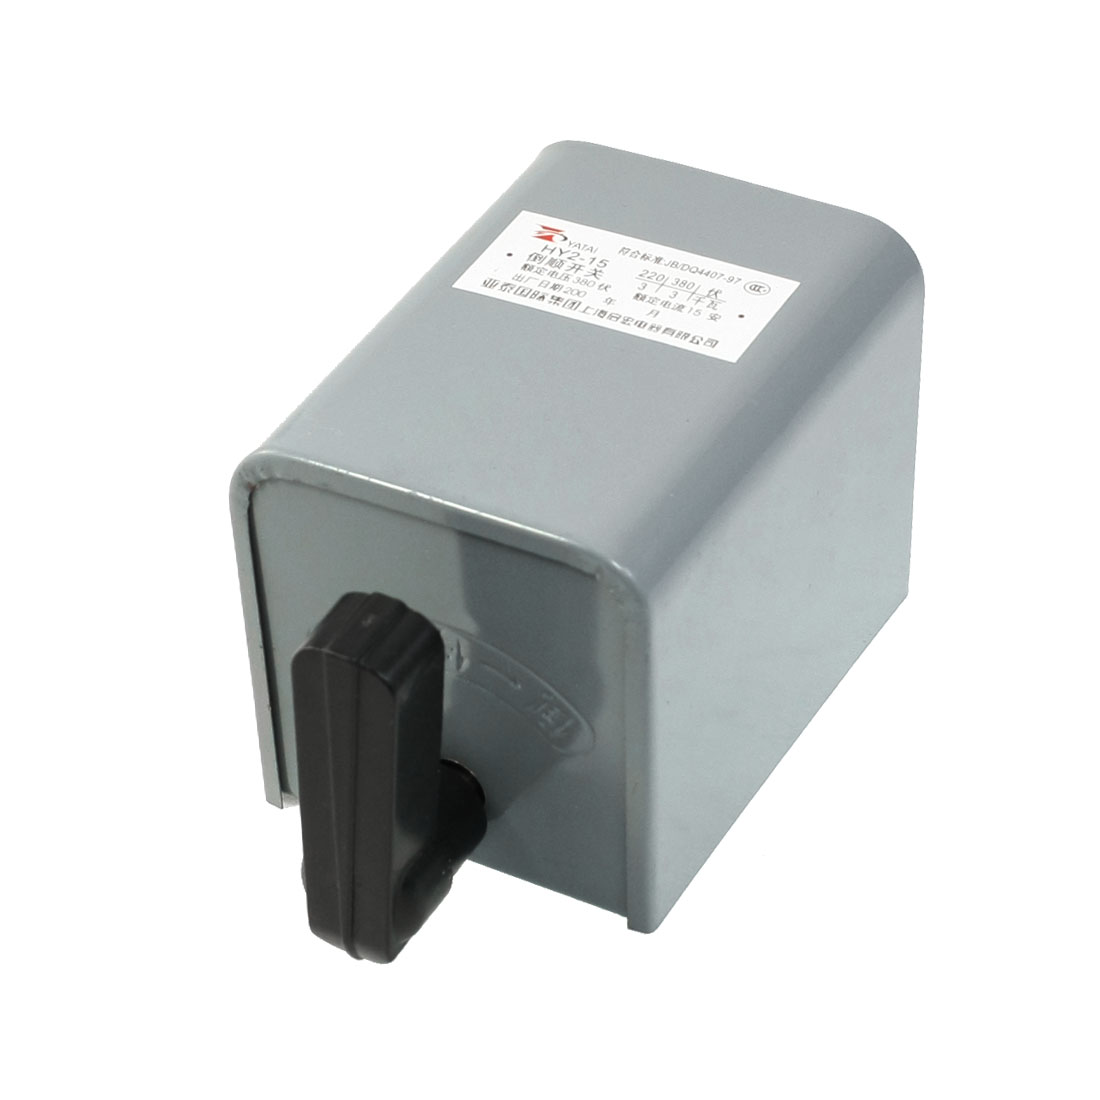 380V 15A 30A 3 Position Motor Forward Reversing Drum Switch HY2-15